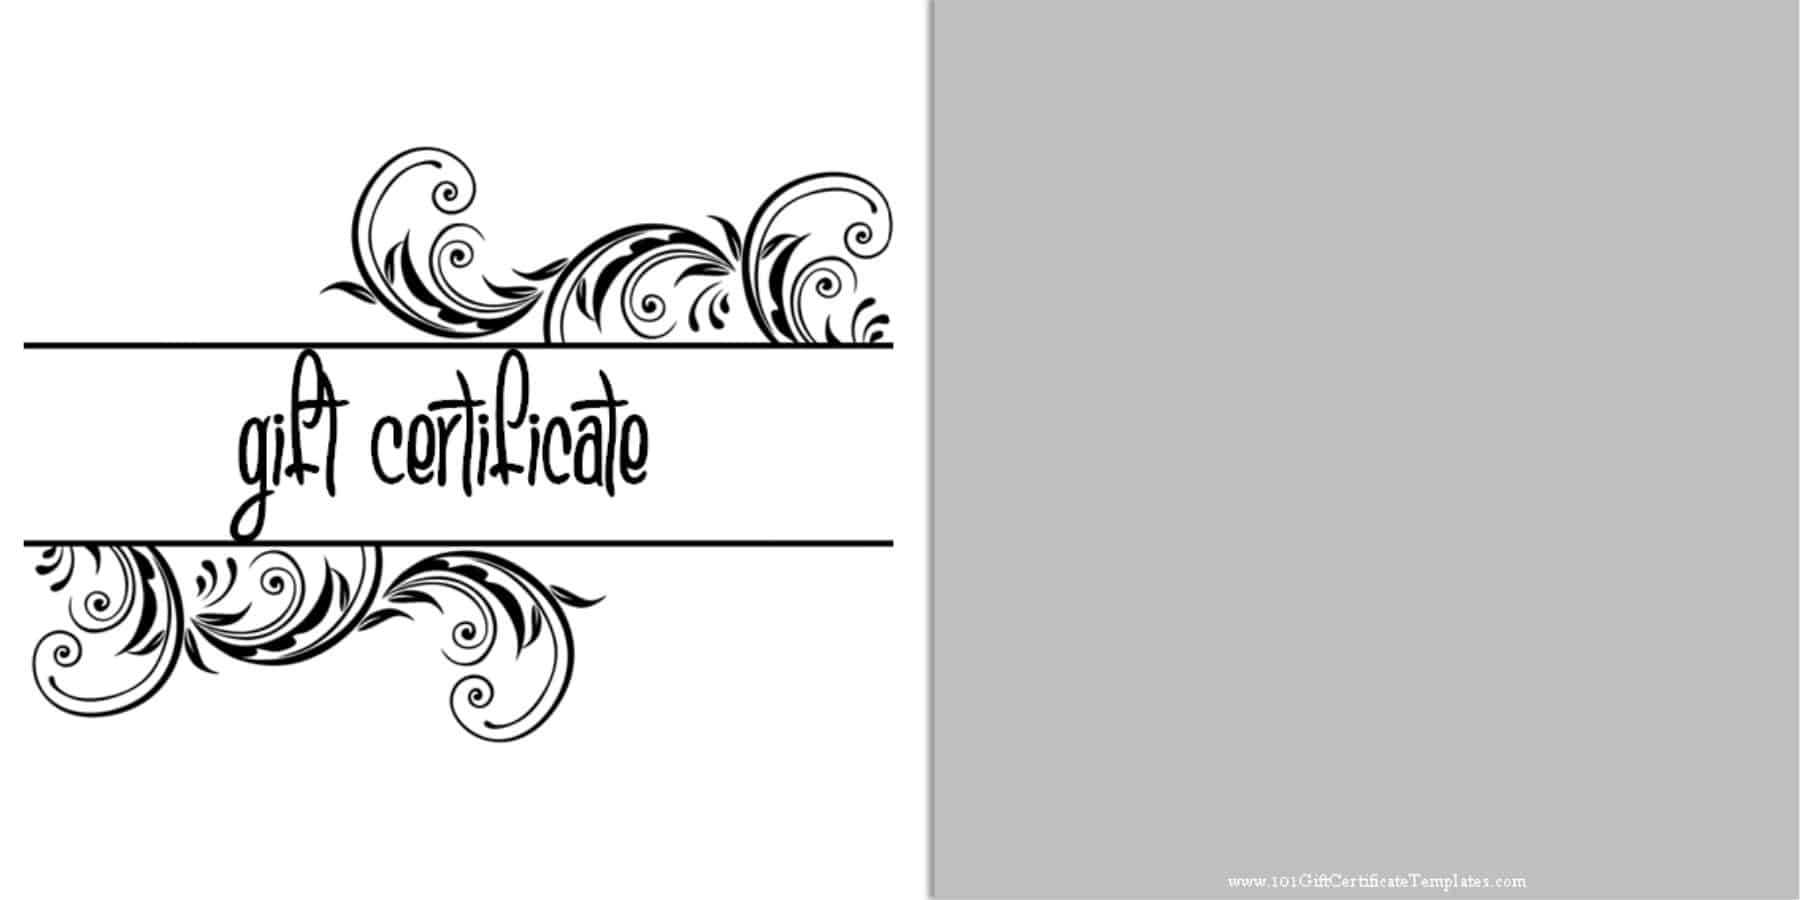 Printable Gift Certificate Templates Within Black And White Gift Certificate Template Free